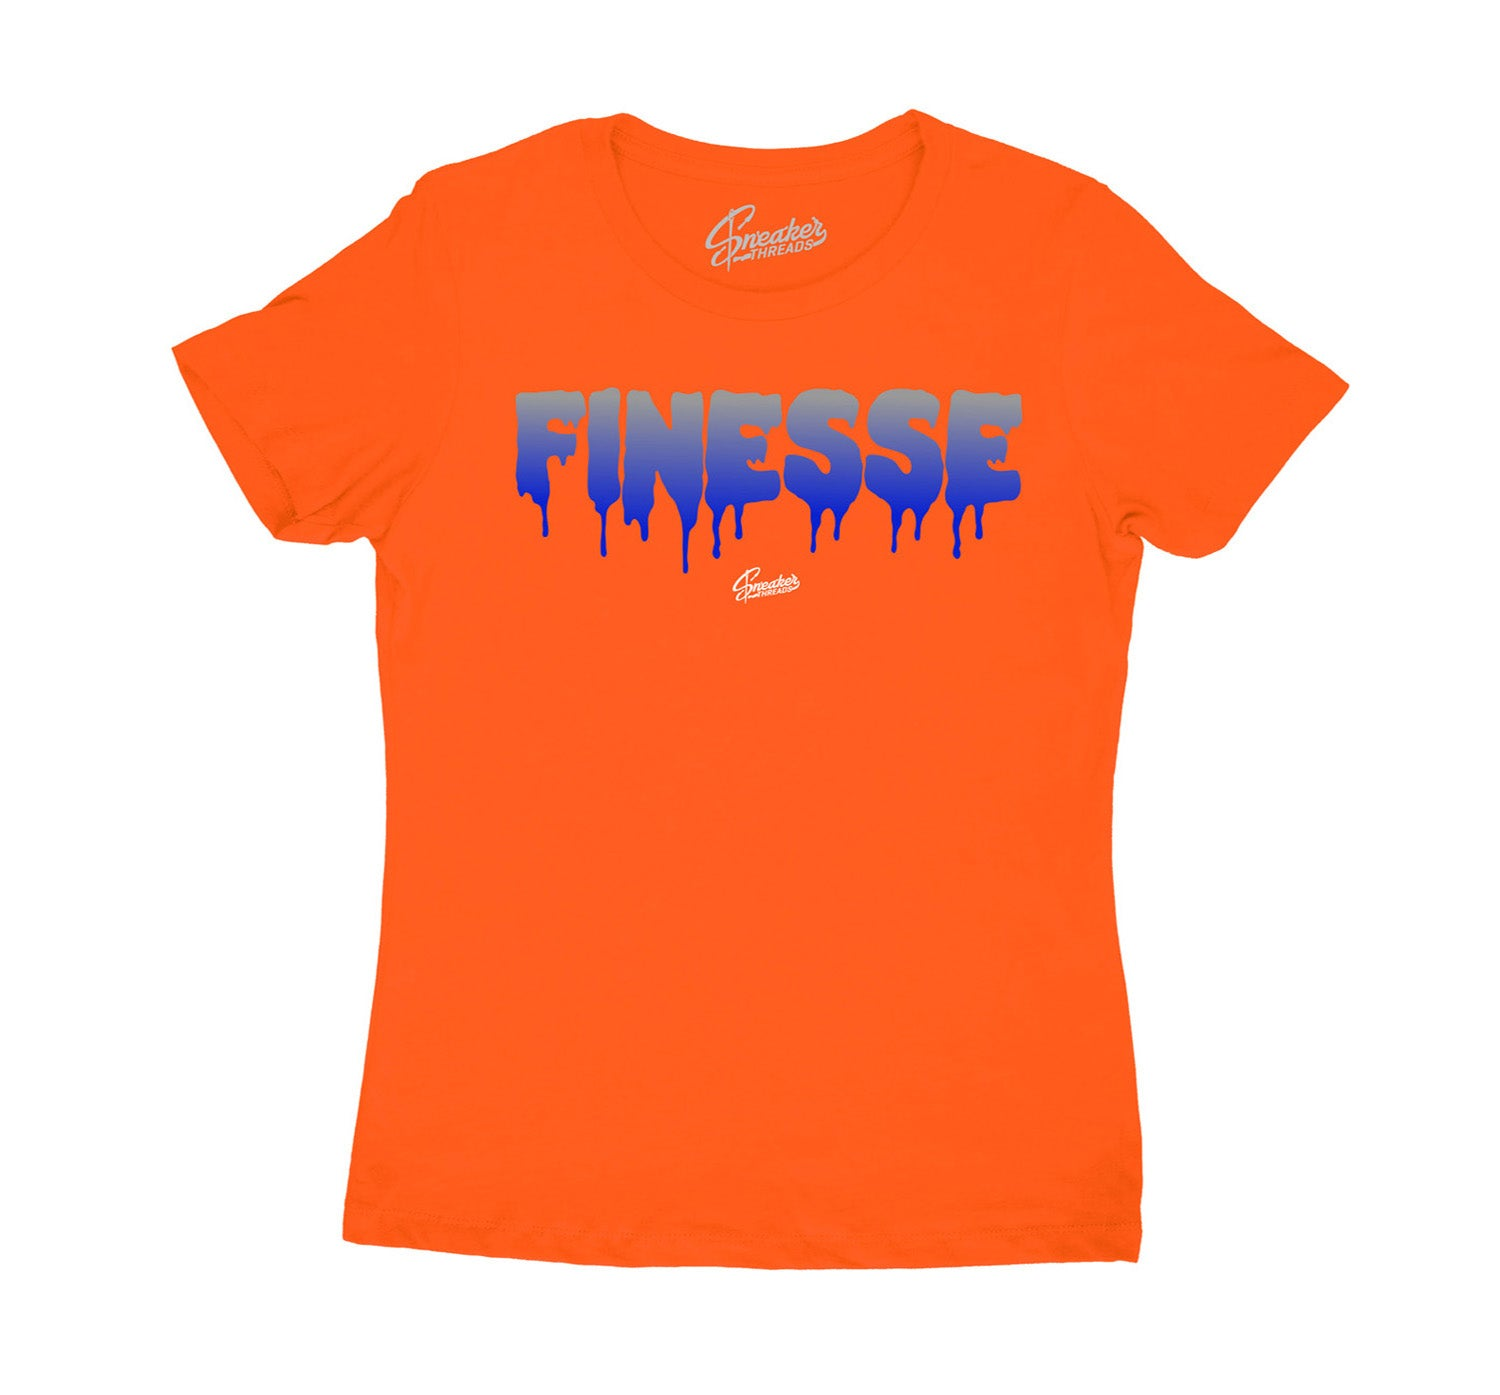 Jordan 3 Knicks womens sneaker has matching tees for womens designed to match the Jordan 3 knicks womens sneakers